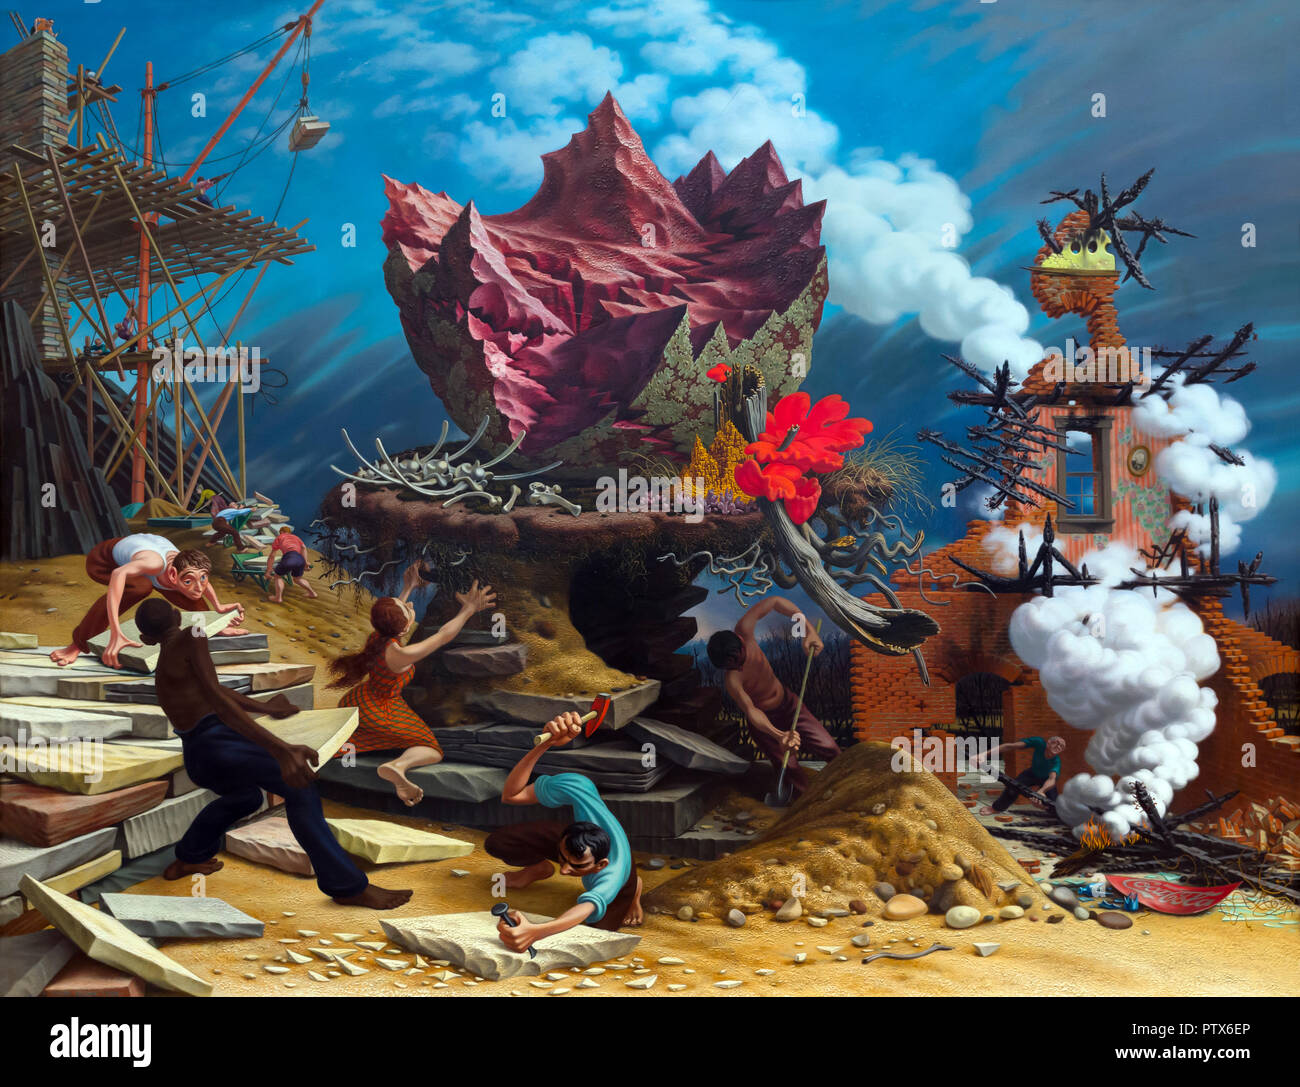 The Rock, Peter Blume, 1944-1948, Art Institute of Chicago, Chicago, Illinois, USA, North America - Stock Image